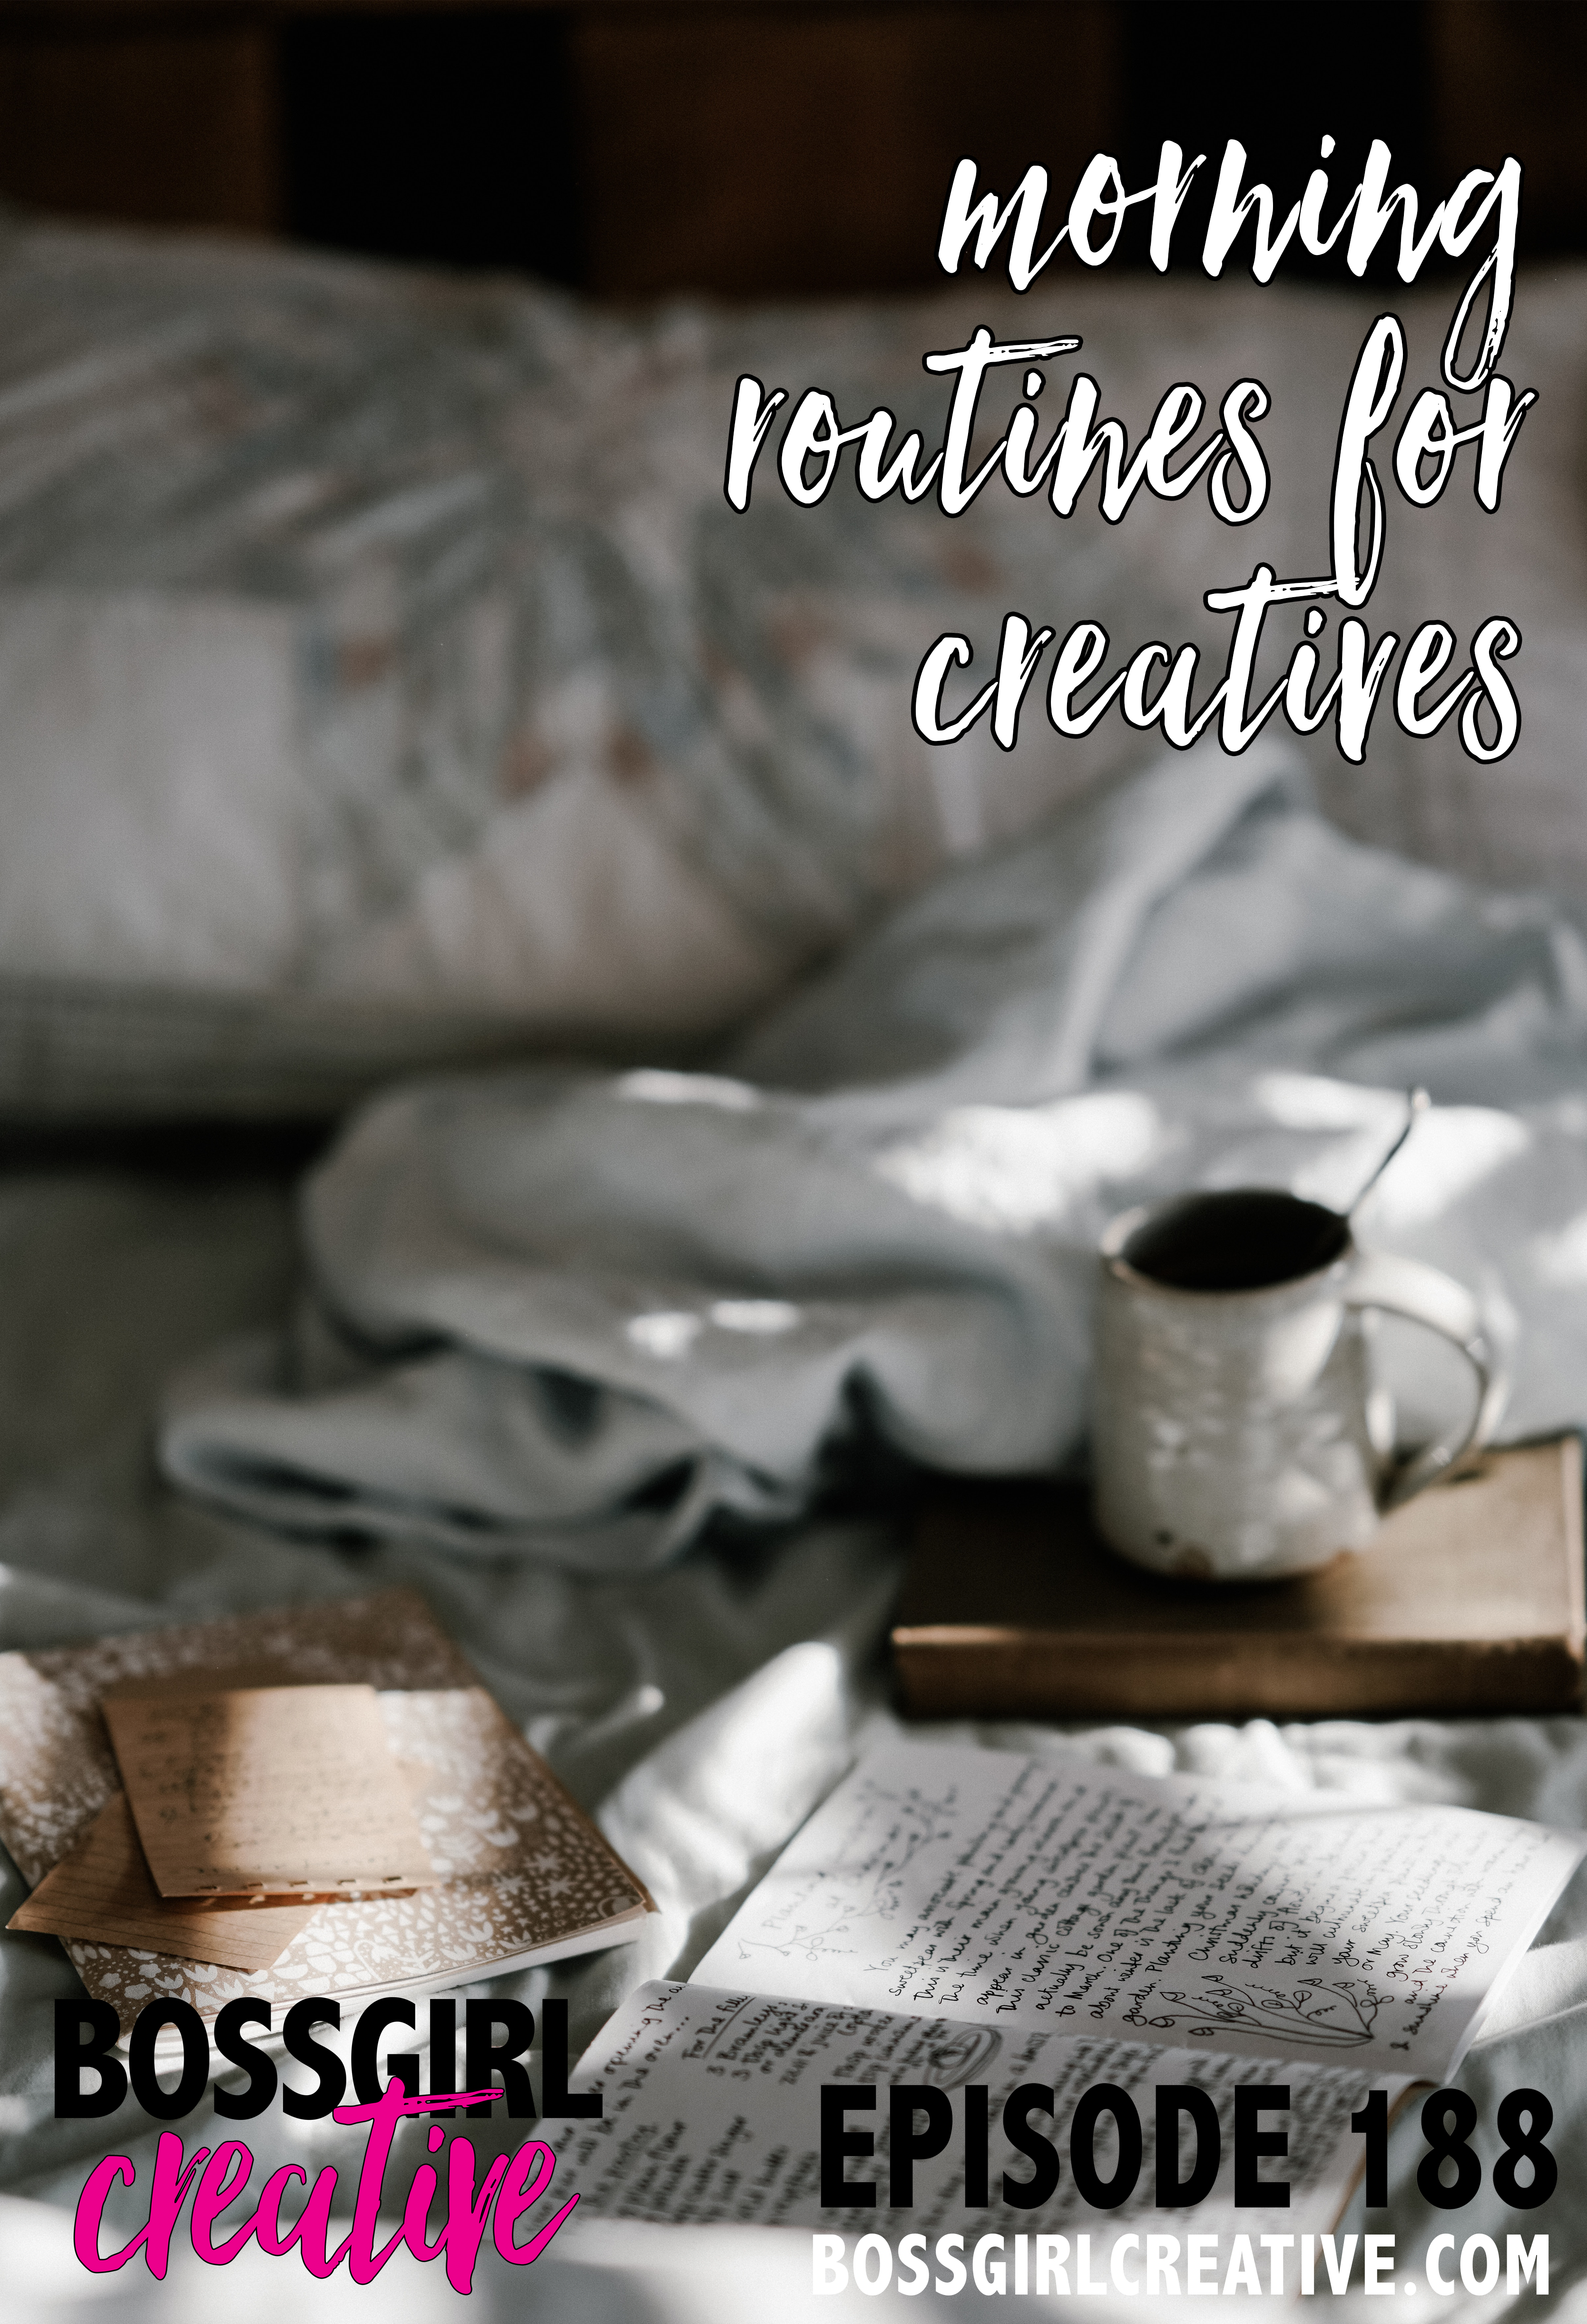 Looking to uplevel your life and business? It all starts with your morning routine. Take a listen to Episode 188 as I share my morning routine & tips to creating yours.